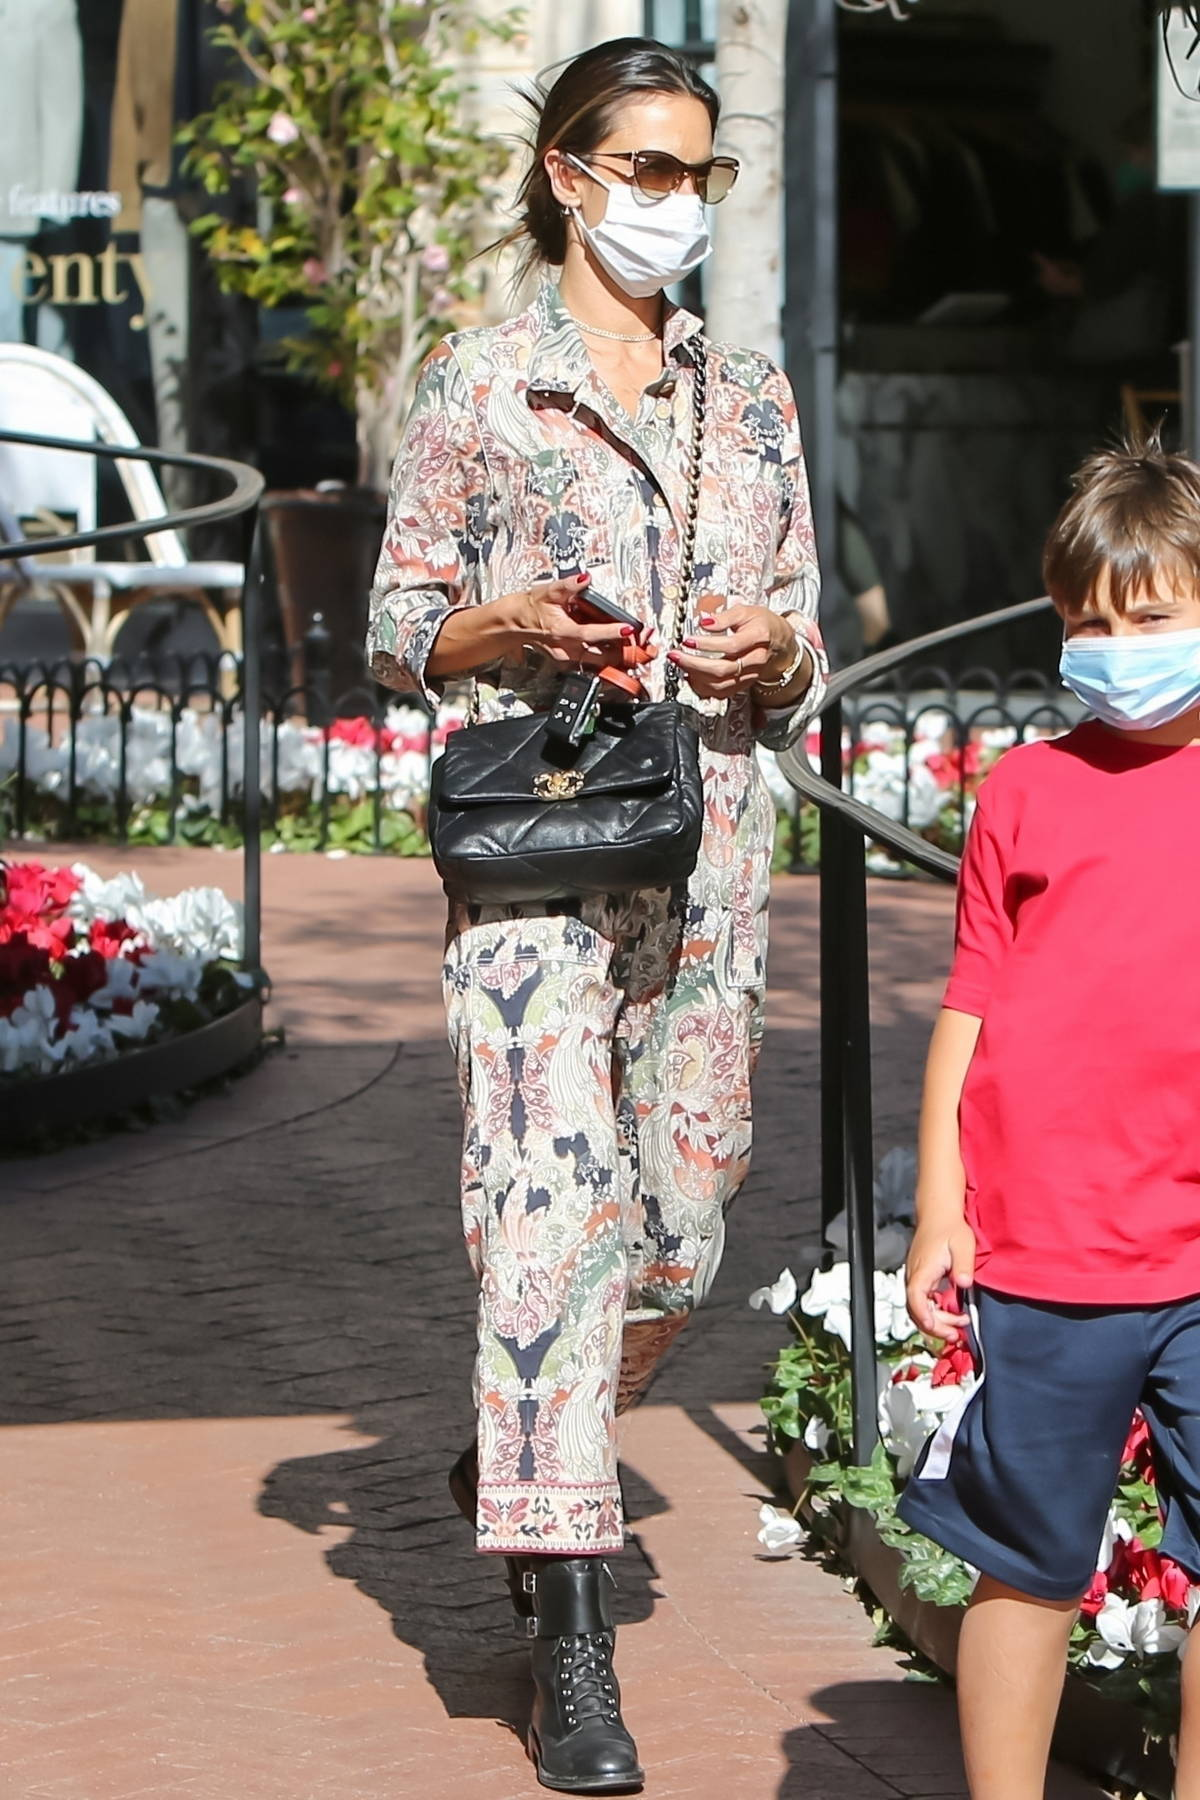 Alessandra Ambrosio looks stylish in a patterned jumpsuit as she takes her kids out for lunch in Pacific Palisades, California